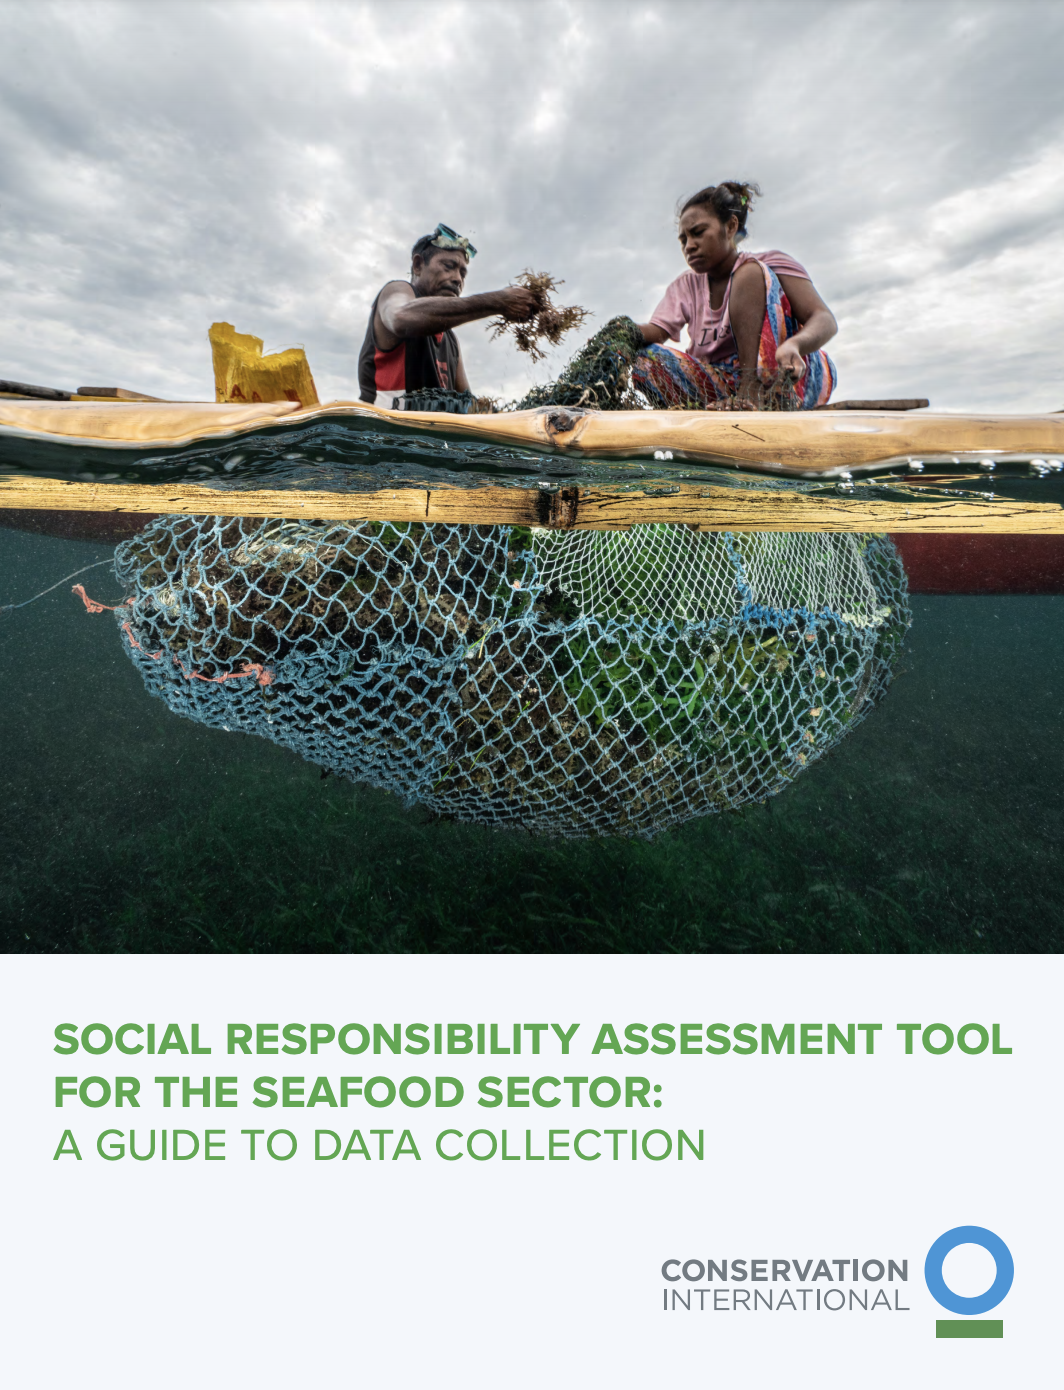 Social Responsibility Assessment Tool for the Seafood Sector: A Guide to Data Collection